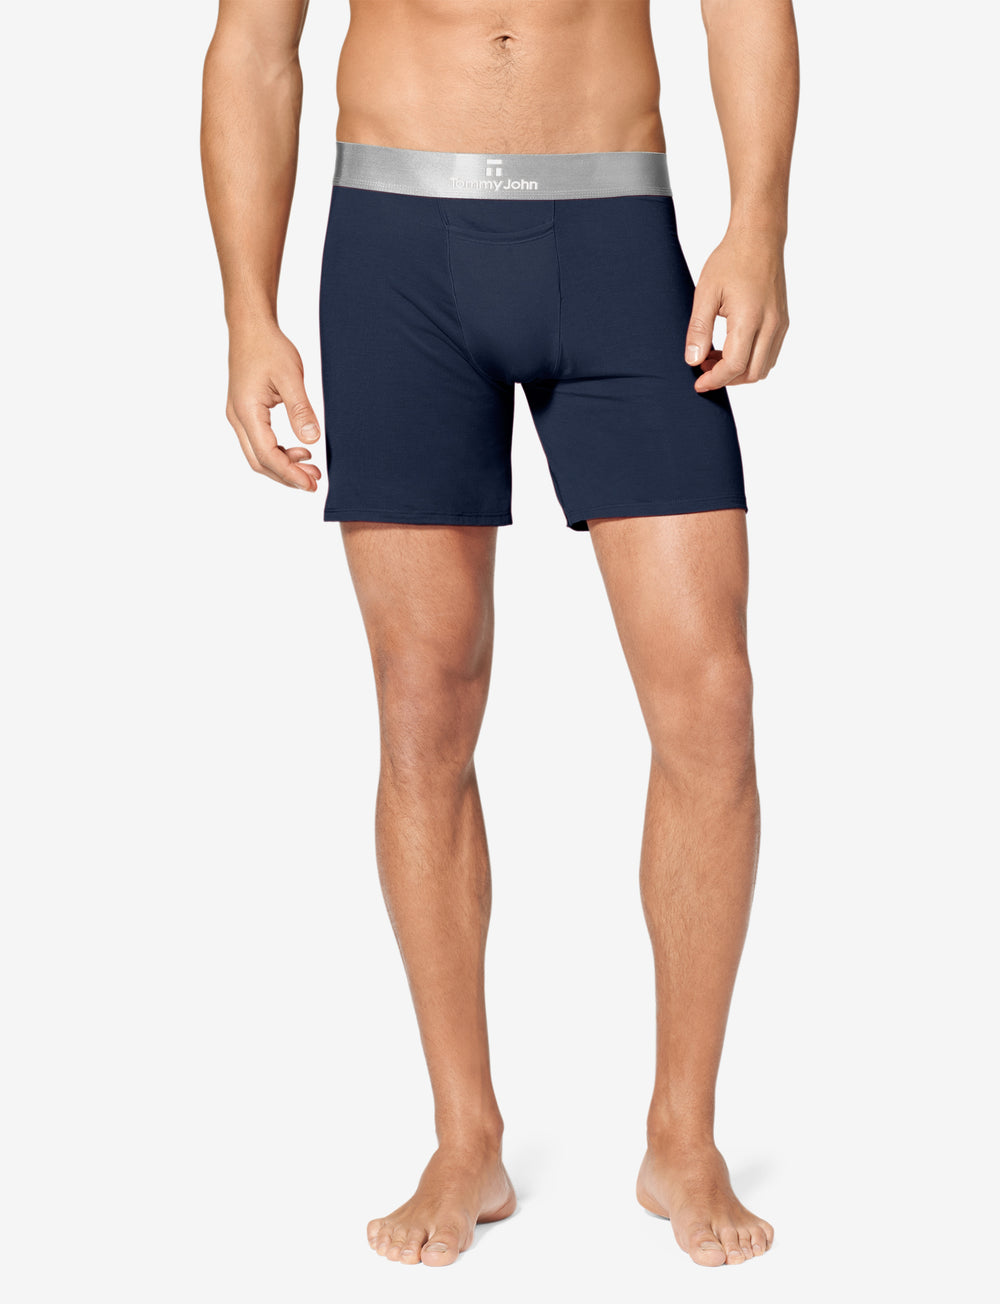 Second Skin Titanium Relaxed Fit Boxer Details Image